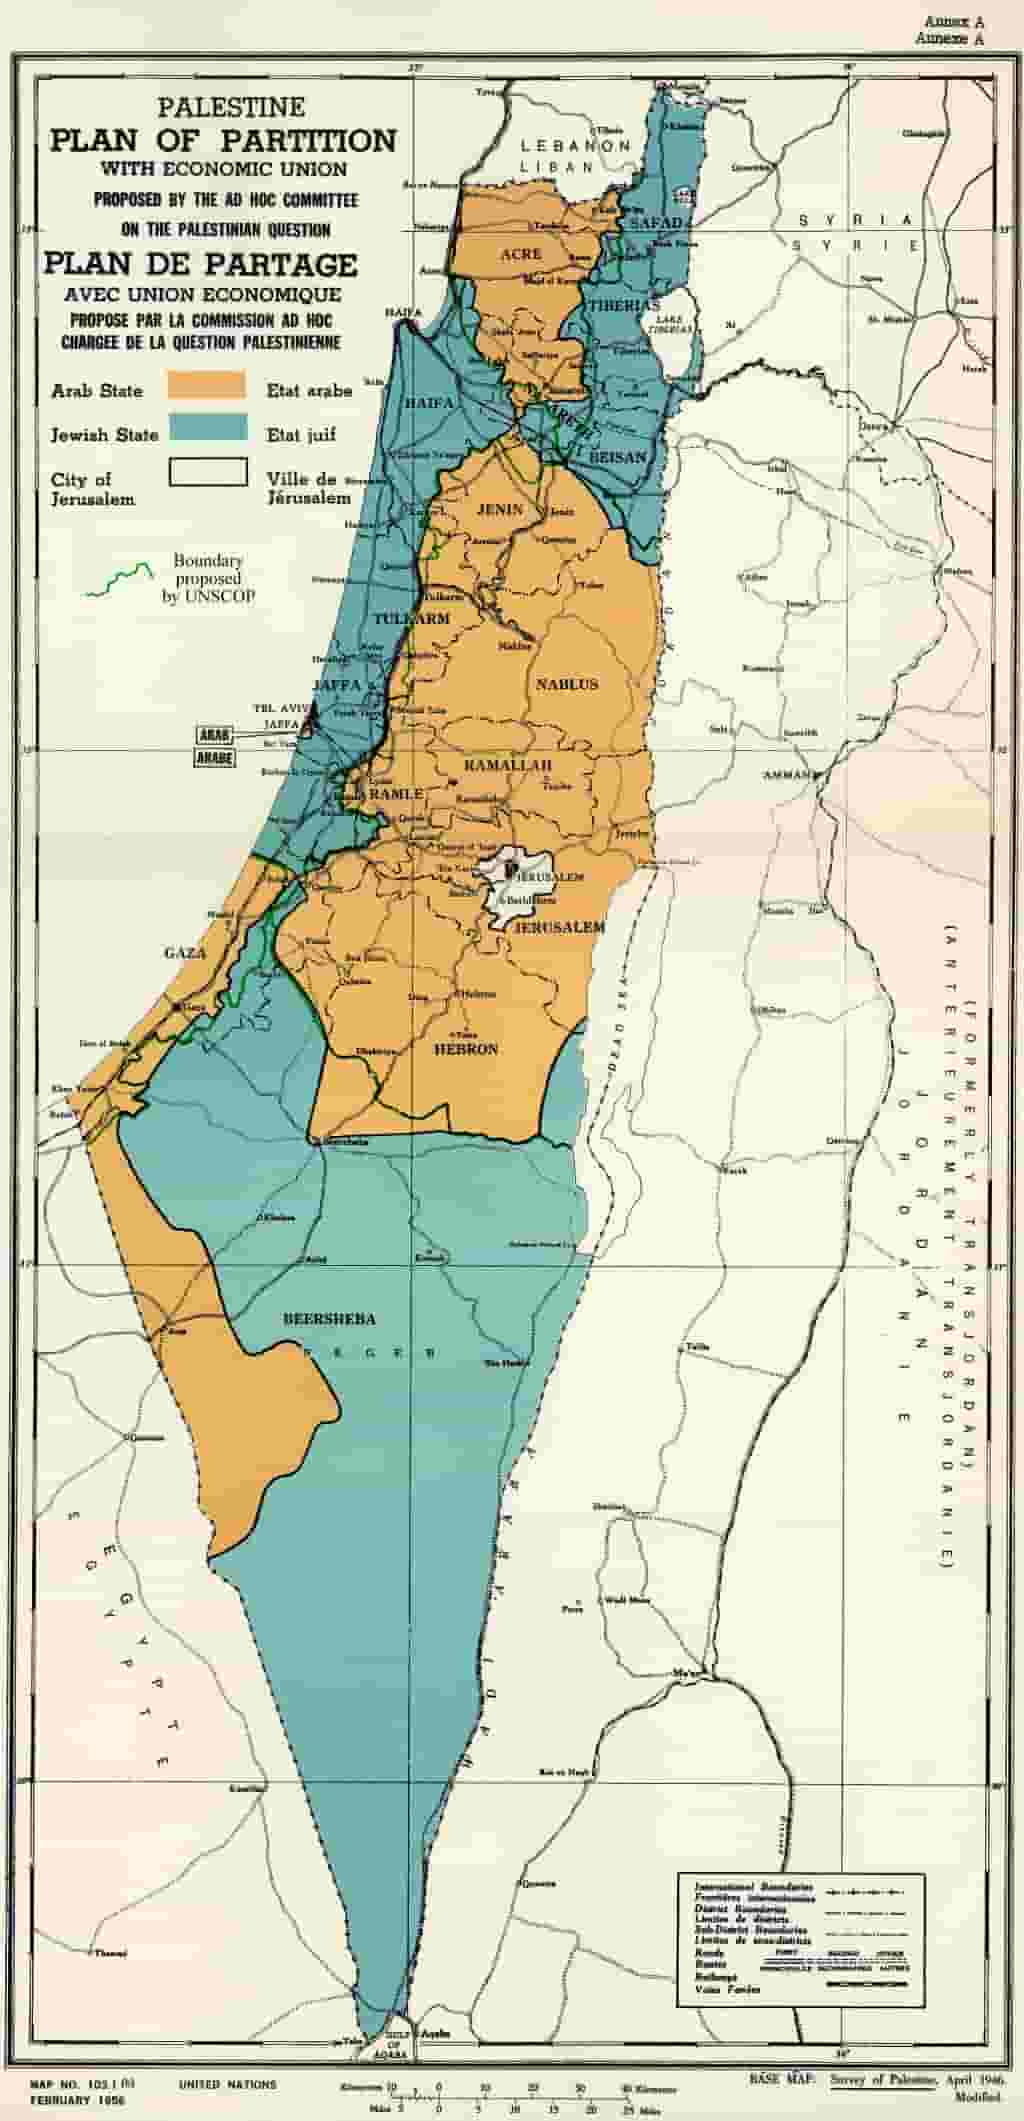 UN_Palestine_Partition_Versions_1947 70 Years Since the UN Partition Plan Vote